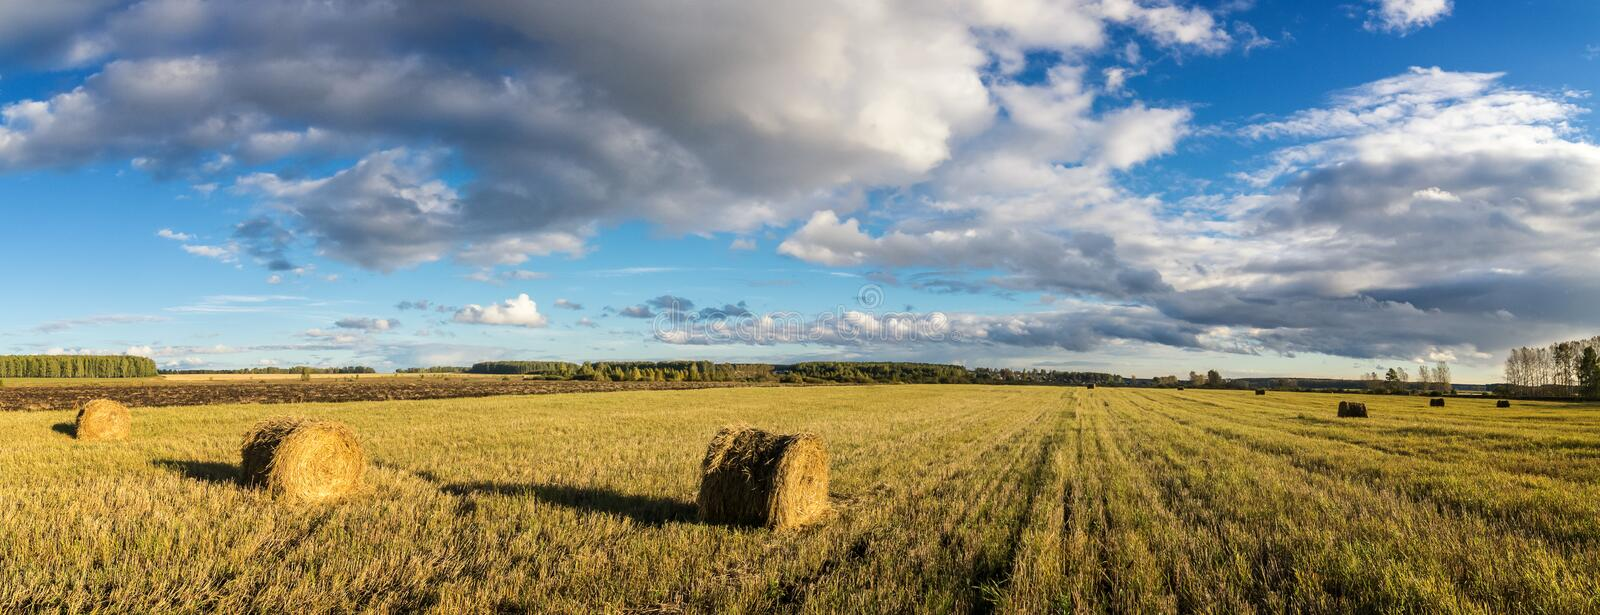 Field, hay, harvest, farm, rural, stack, straw, grass, autumn, earth, September, August, summer, farm, village, industry, agricult stock image